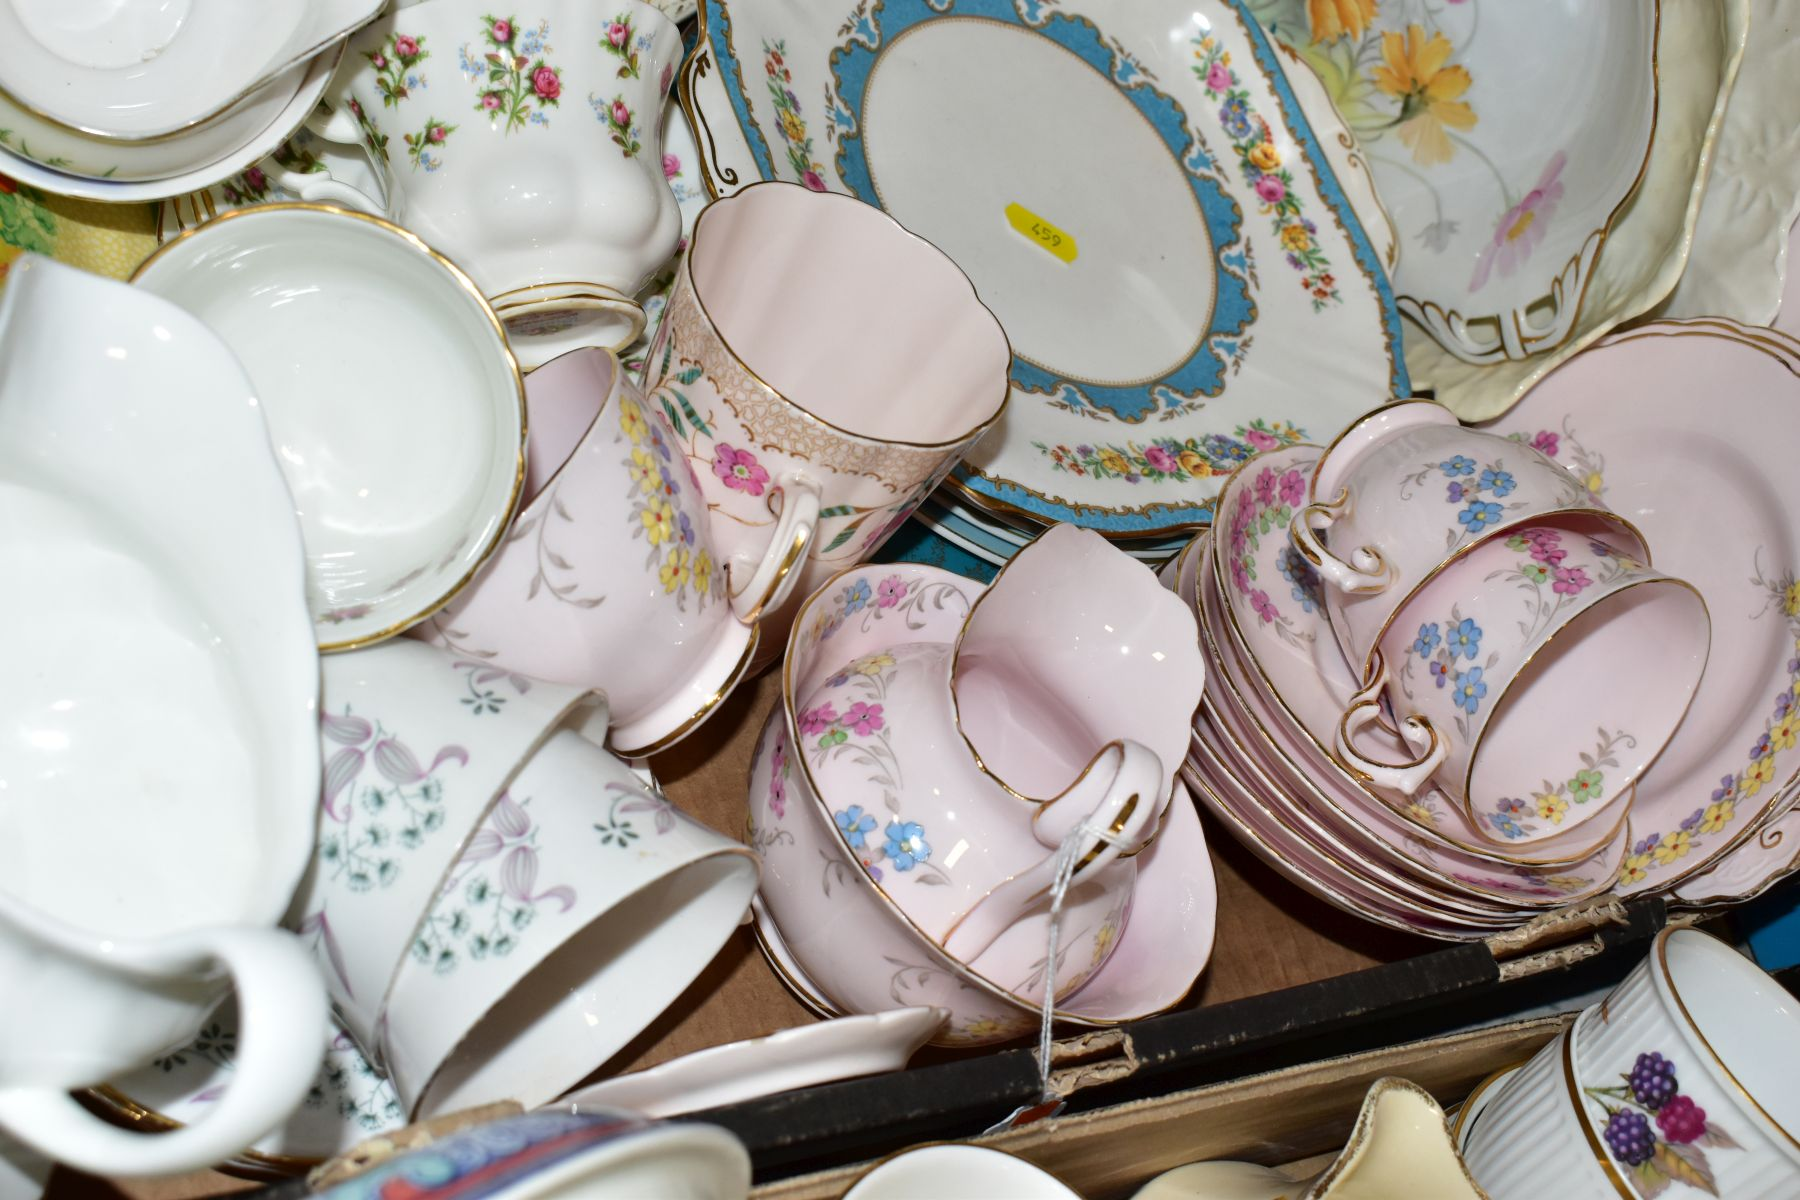 TWO BOXES OF WEDGWOOD ROYAL WORCESTER, ROYAL ALBERT AND TUSCAN CHINA TEA AND DINNER WARES, including - Image 6 of 10